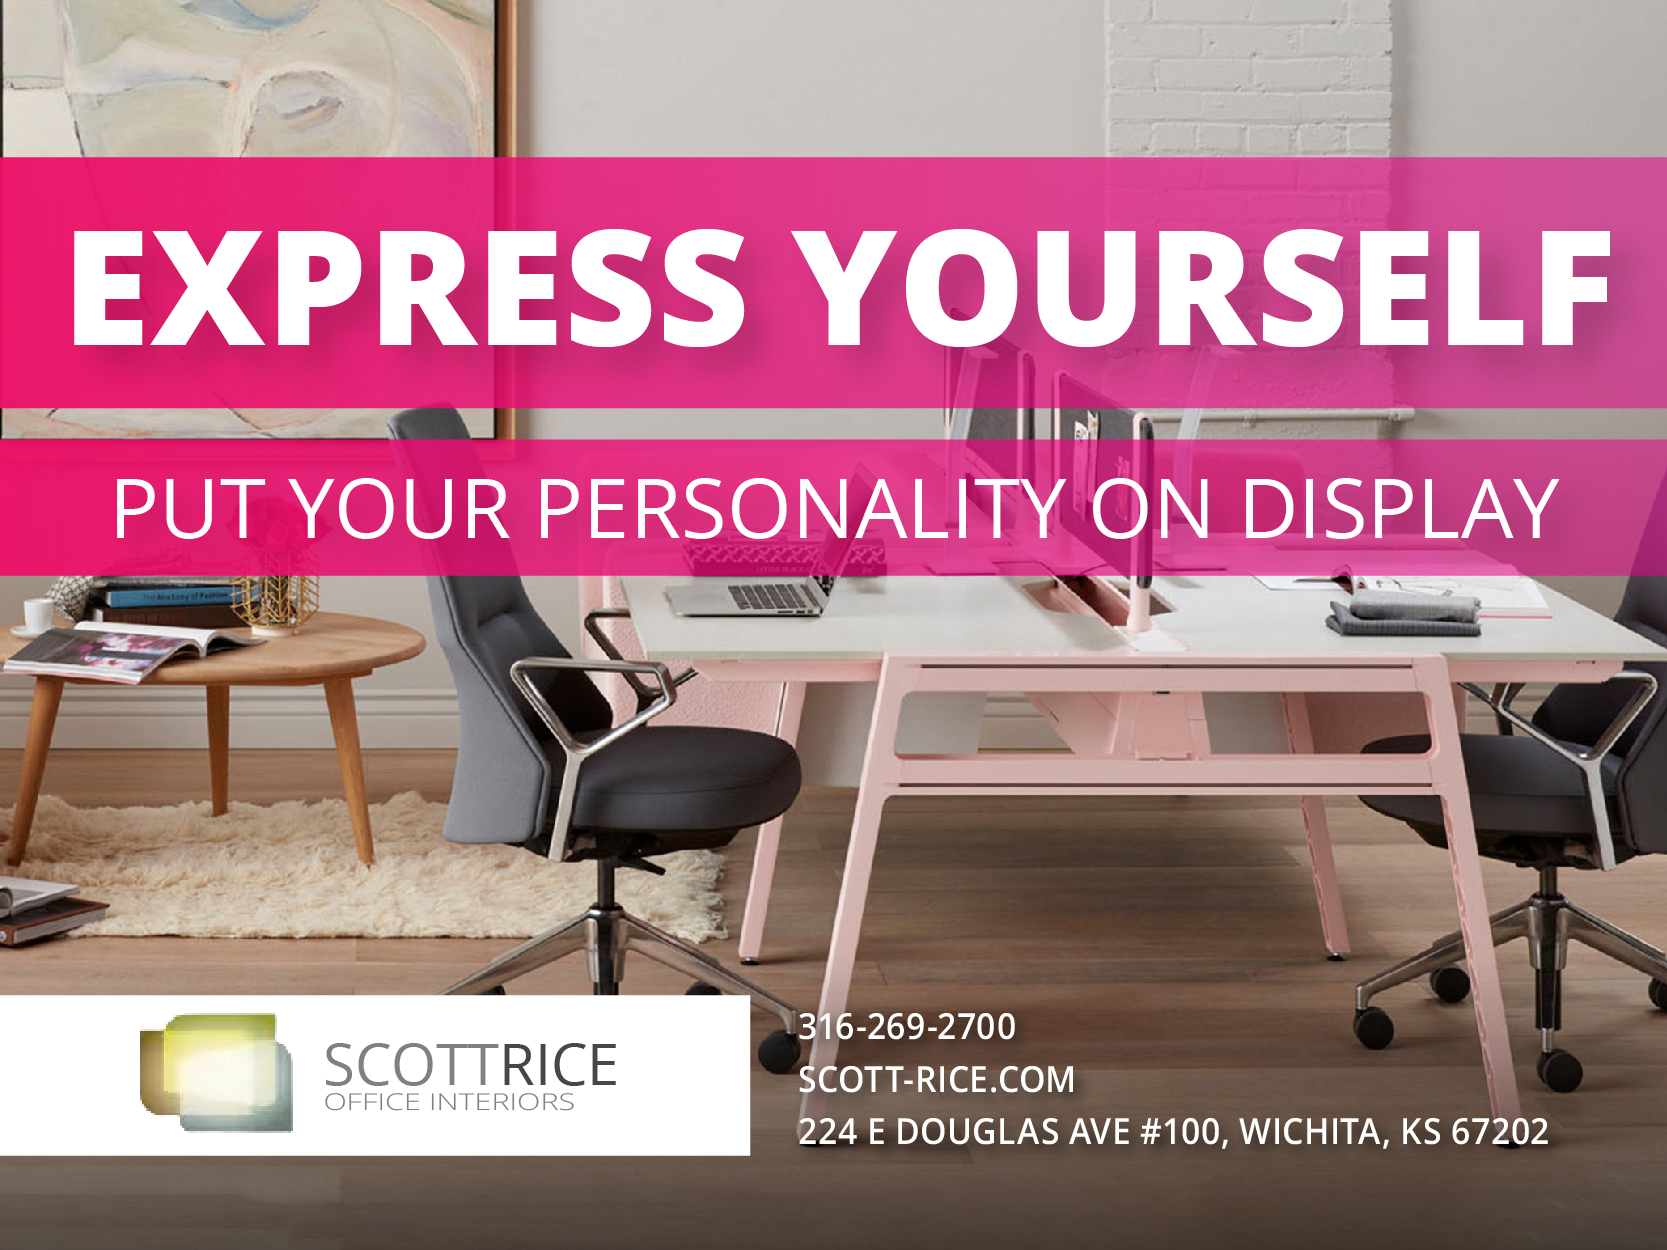 SR_express yourself_Social Graphics-01